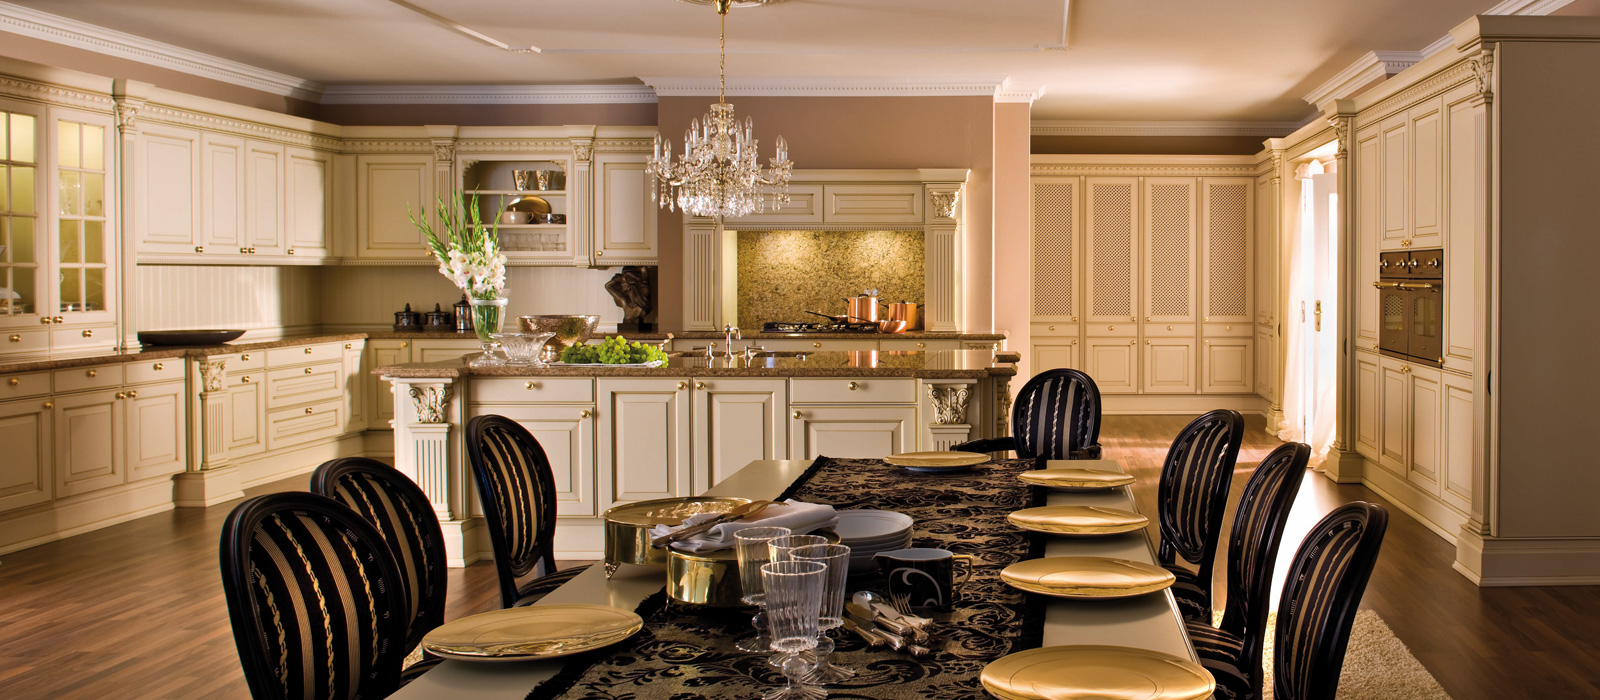 versailles de luxe european kitchen cabinets Luxury Kitchen Cabinets